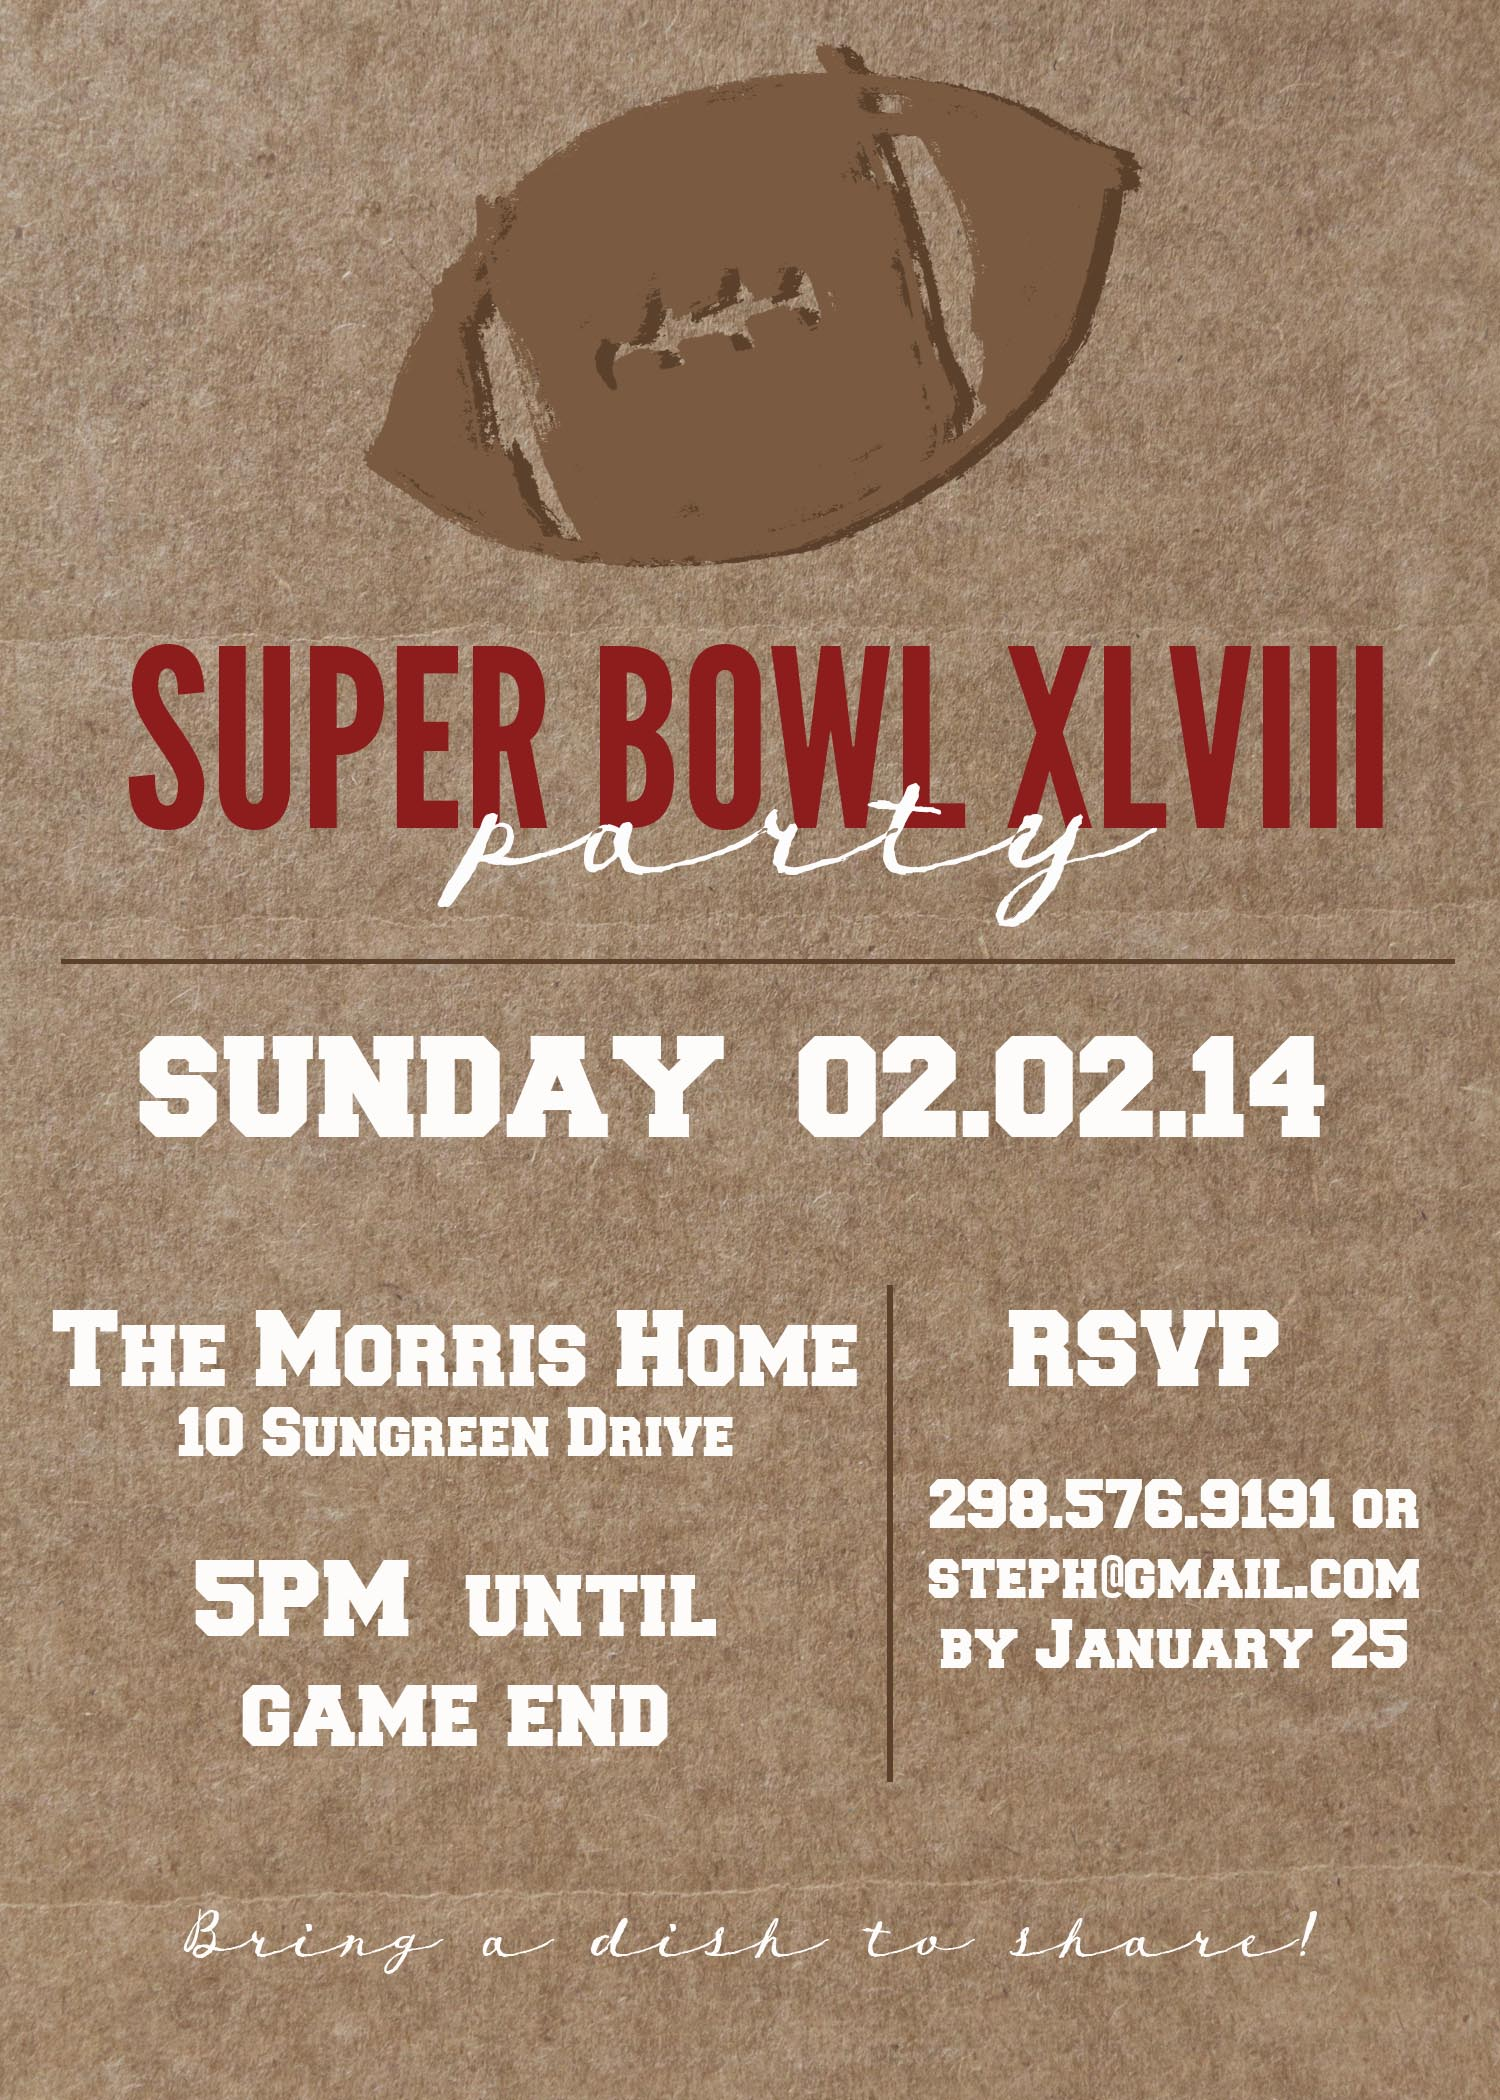 Super Bowl Party XLVIII Customizable Invitation Free to download